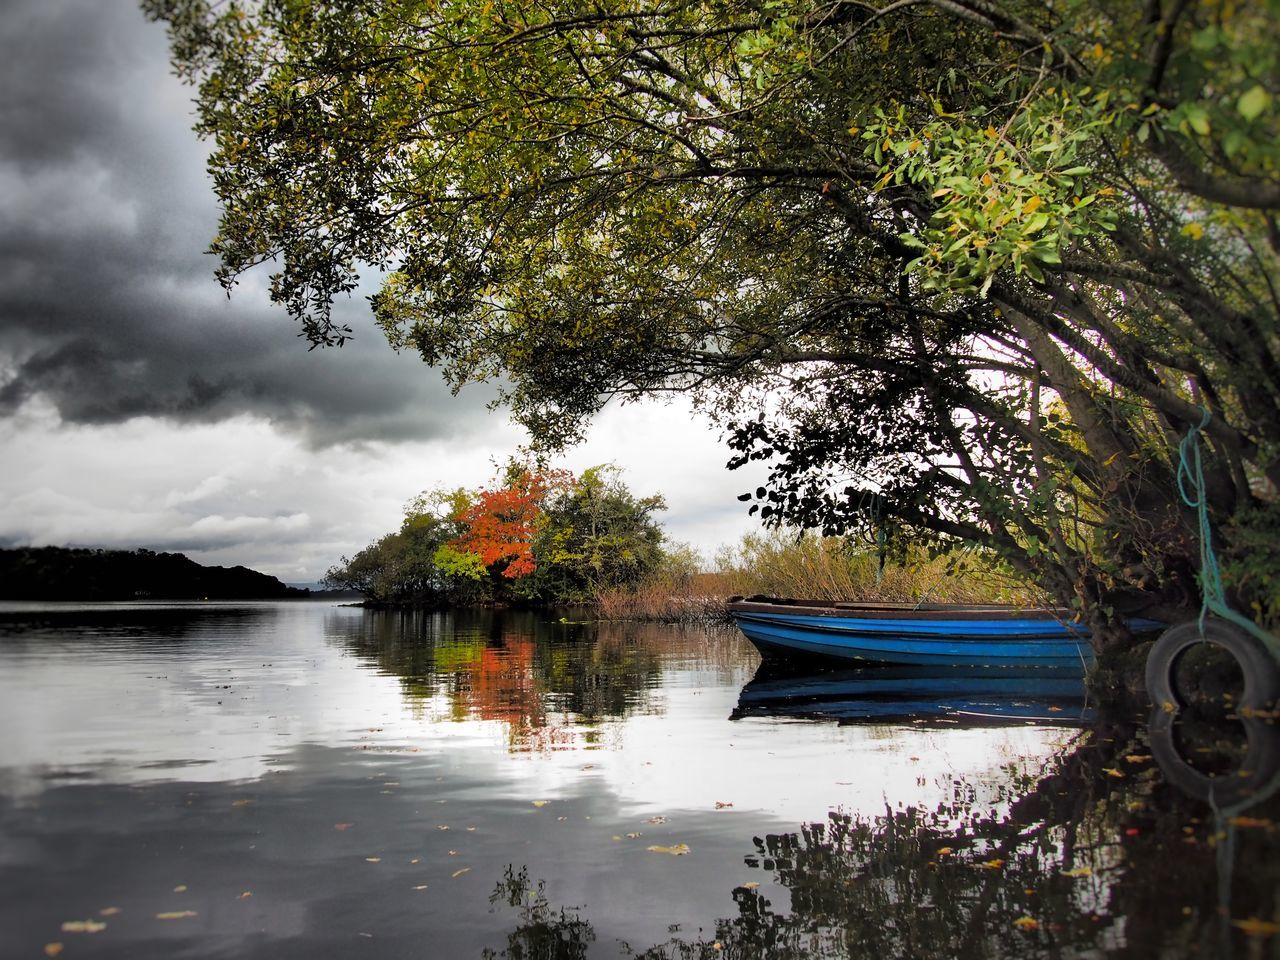 Lough Leane County Kerry Ireland Autumn Autumn Colours Reflection Nature Beauty In Nature Lake Outdoors Lough Leane Travel Destinations Lake View Lough Reflection Lake Landscapes Landscape Scenics Overhanging Trees Boat Autumn Colors